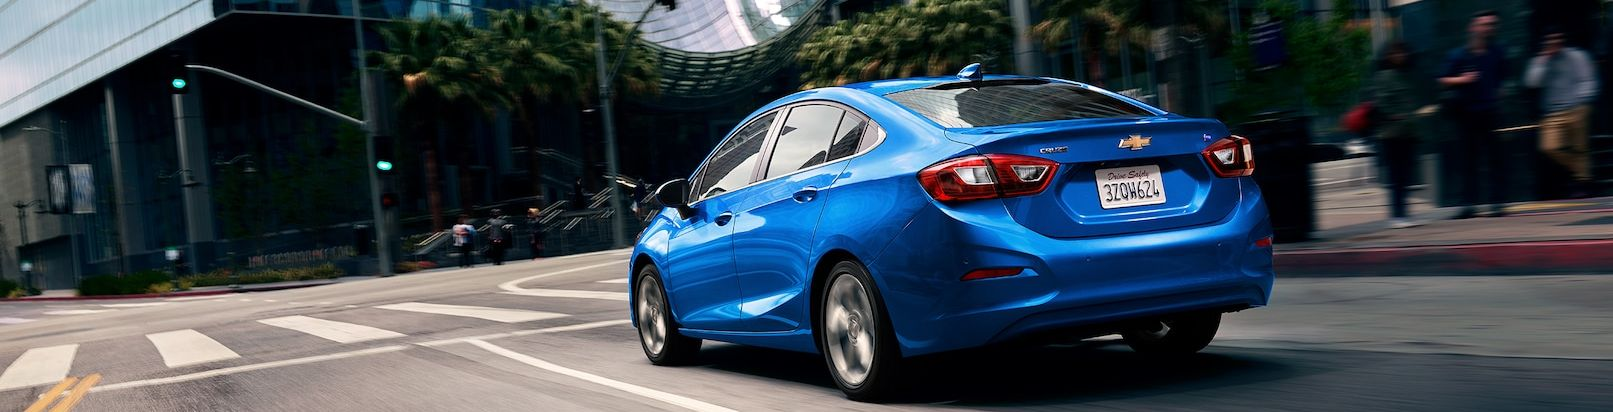 Used Chevrolet Cruze for Sale near Austintown, OH